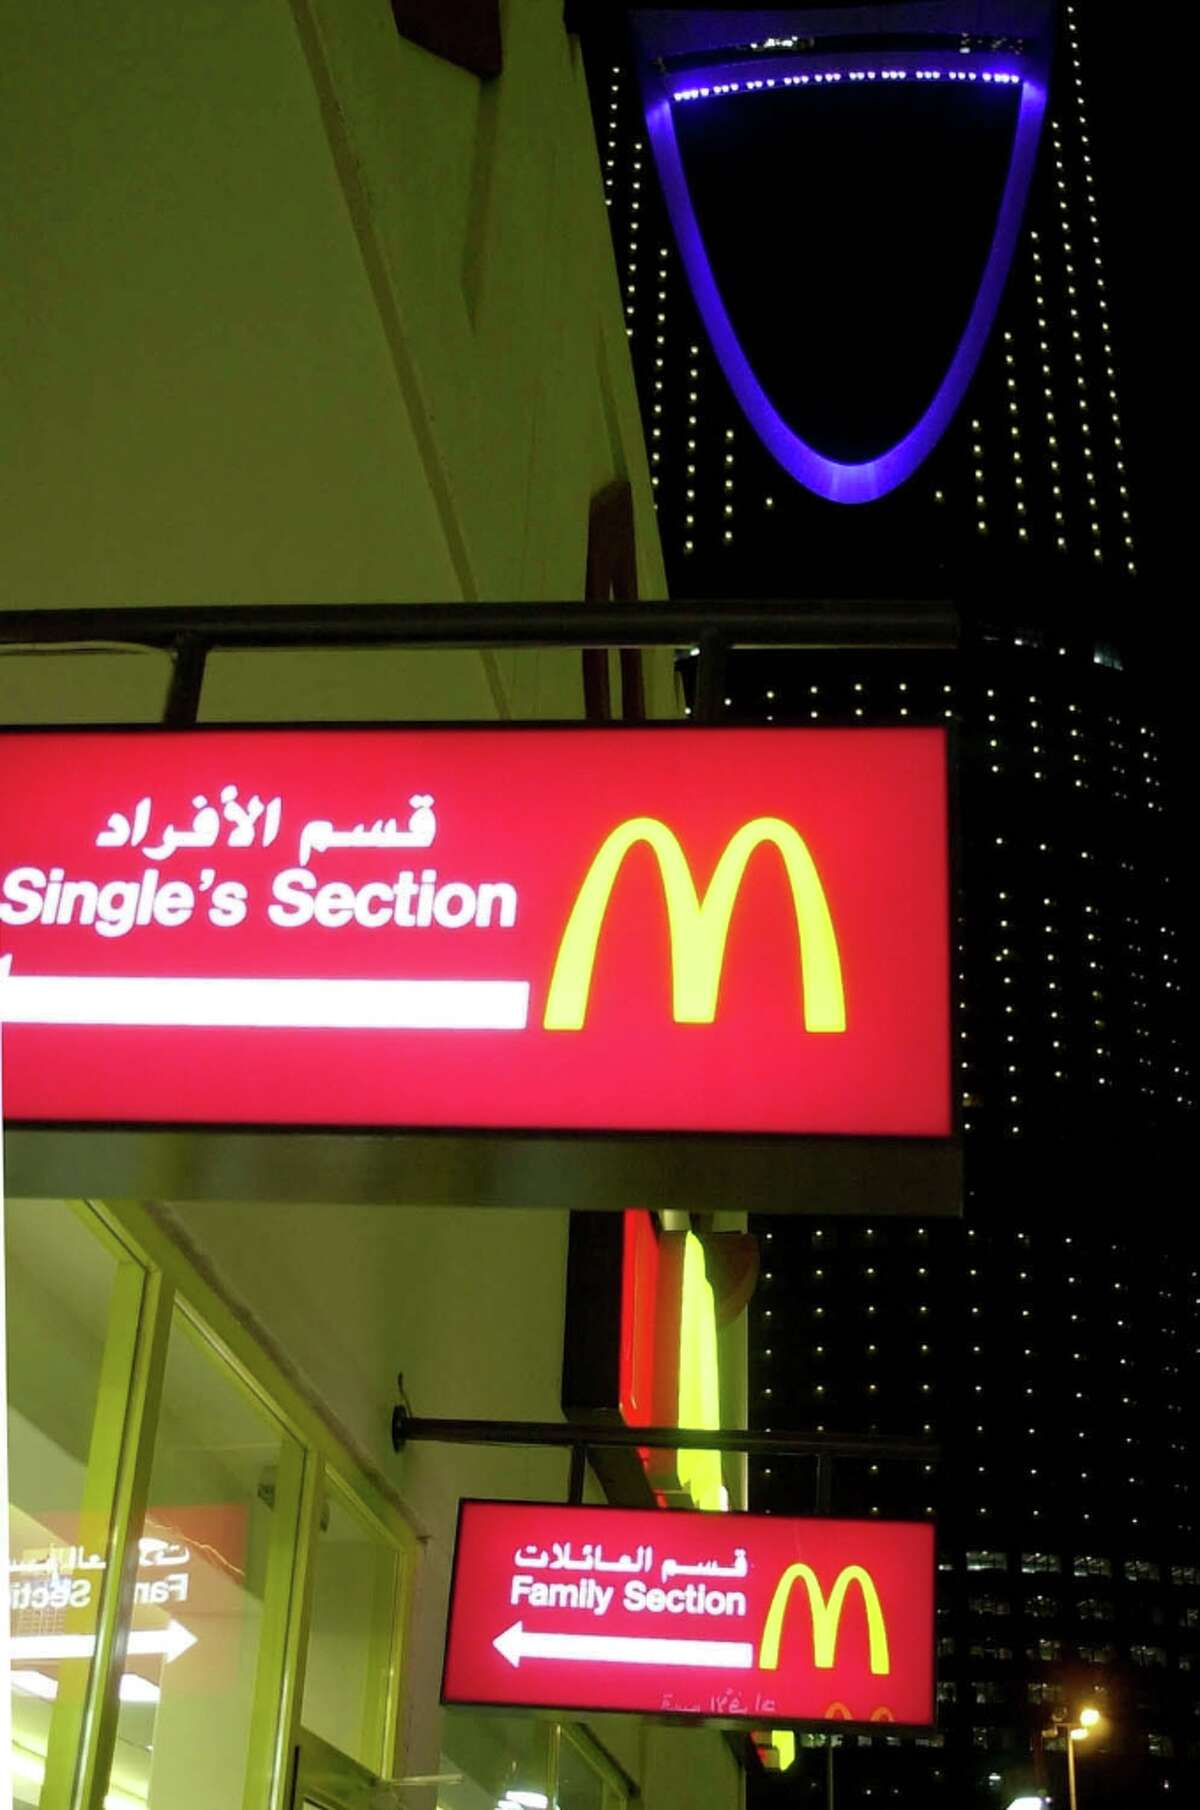 A McDonald's restaurant in downtown Riyadh, Saudi Arabia, avoids improper mixing of the sexes with a singles' section for men alone or with other men and a family section for families and women alone or with their children and other women. (Associated Press)